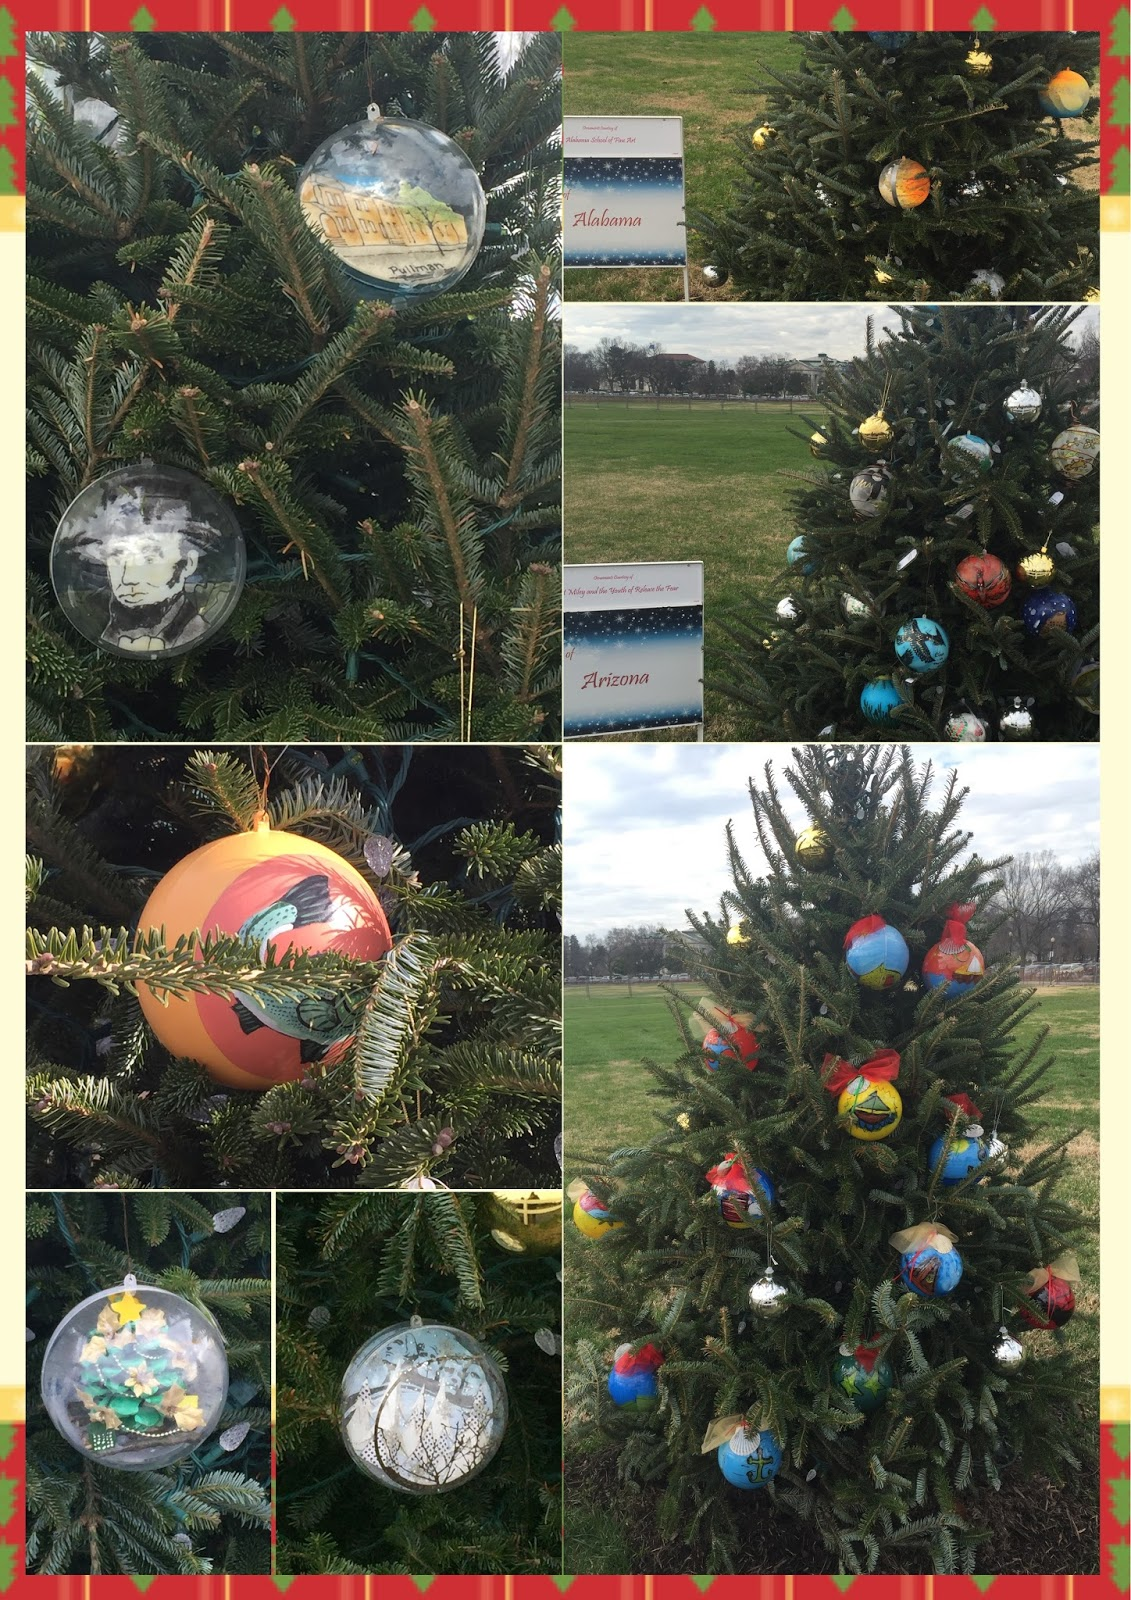 Wheelchair Travel Adventures December 2015 - Visiting The National Christmas Tree